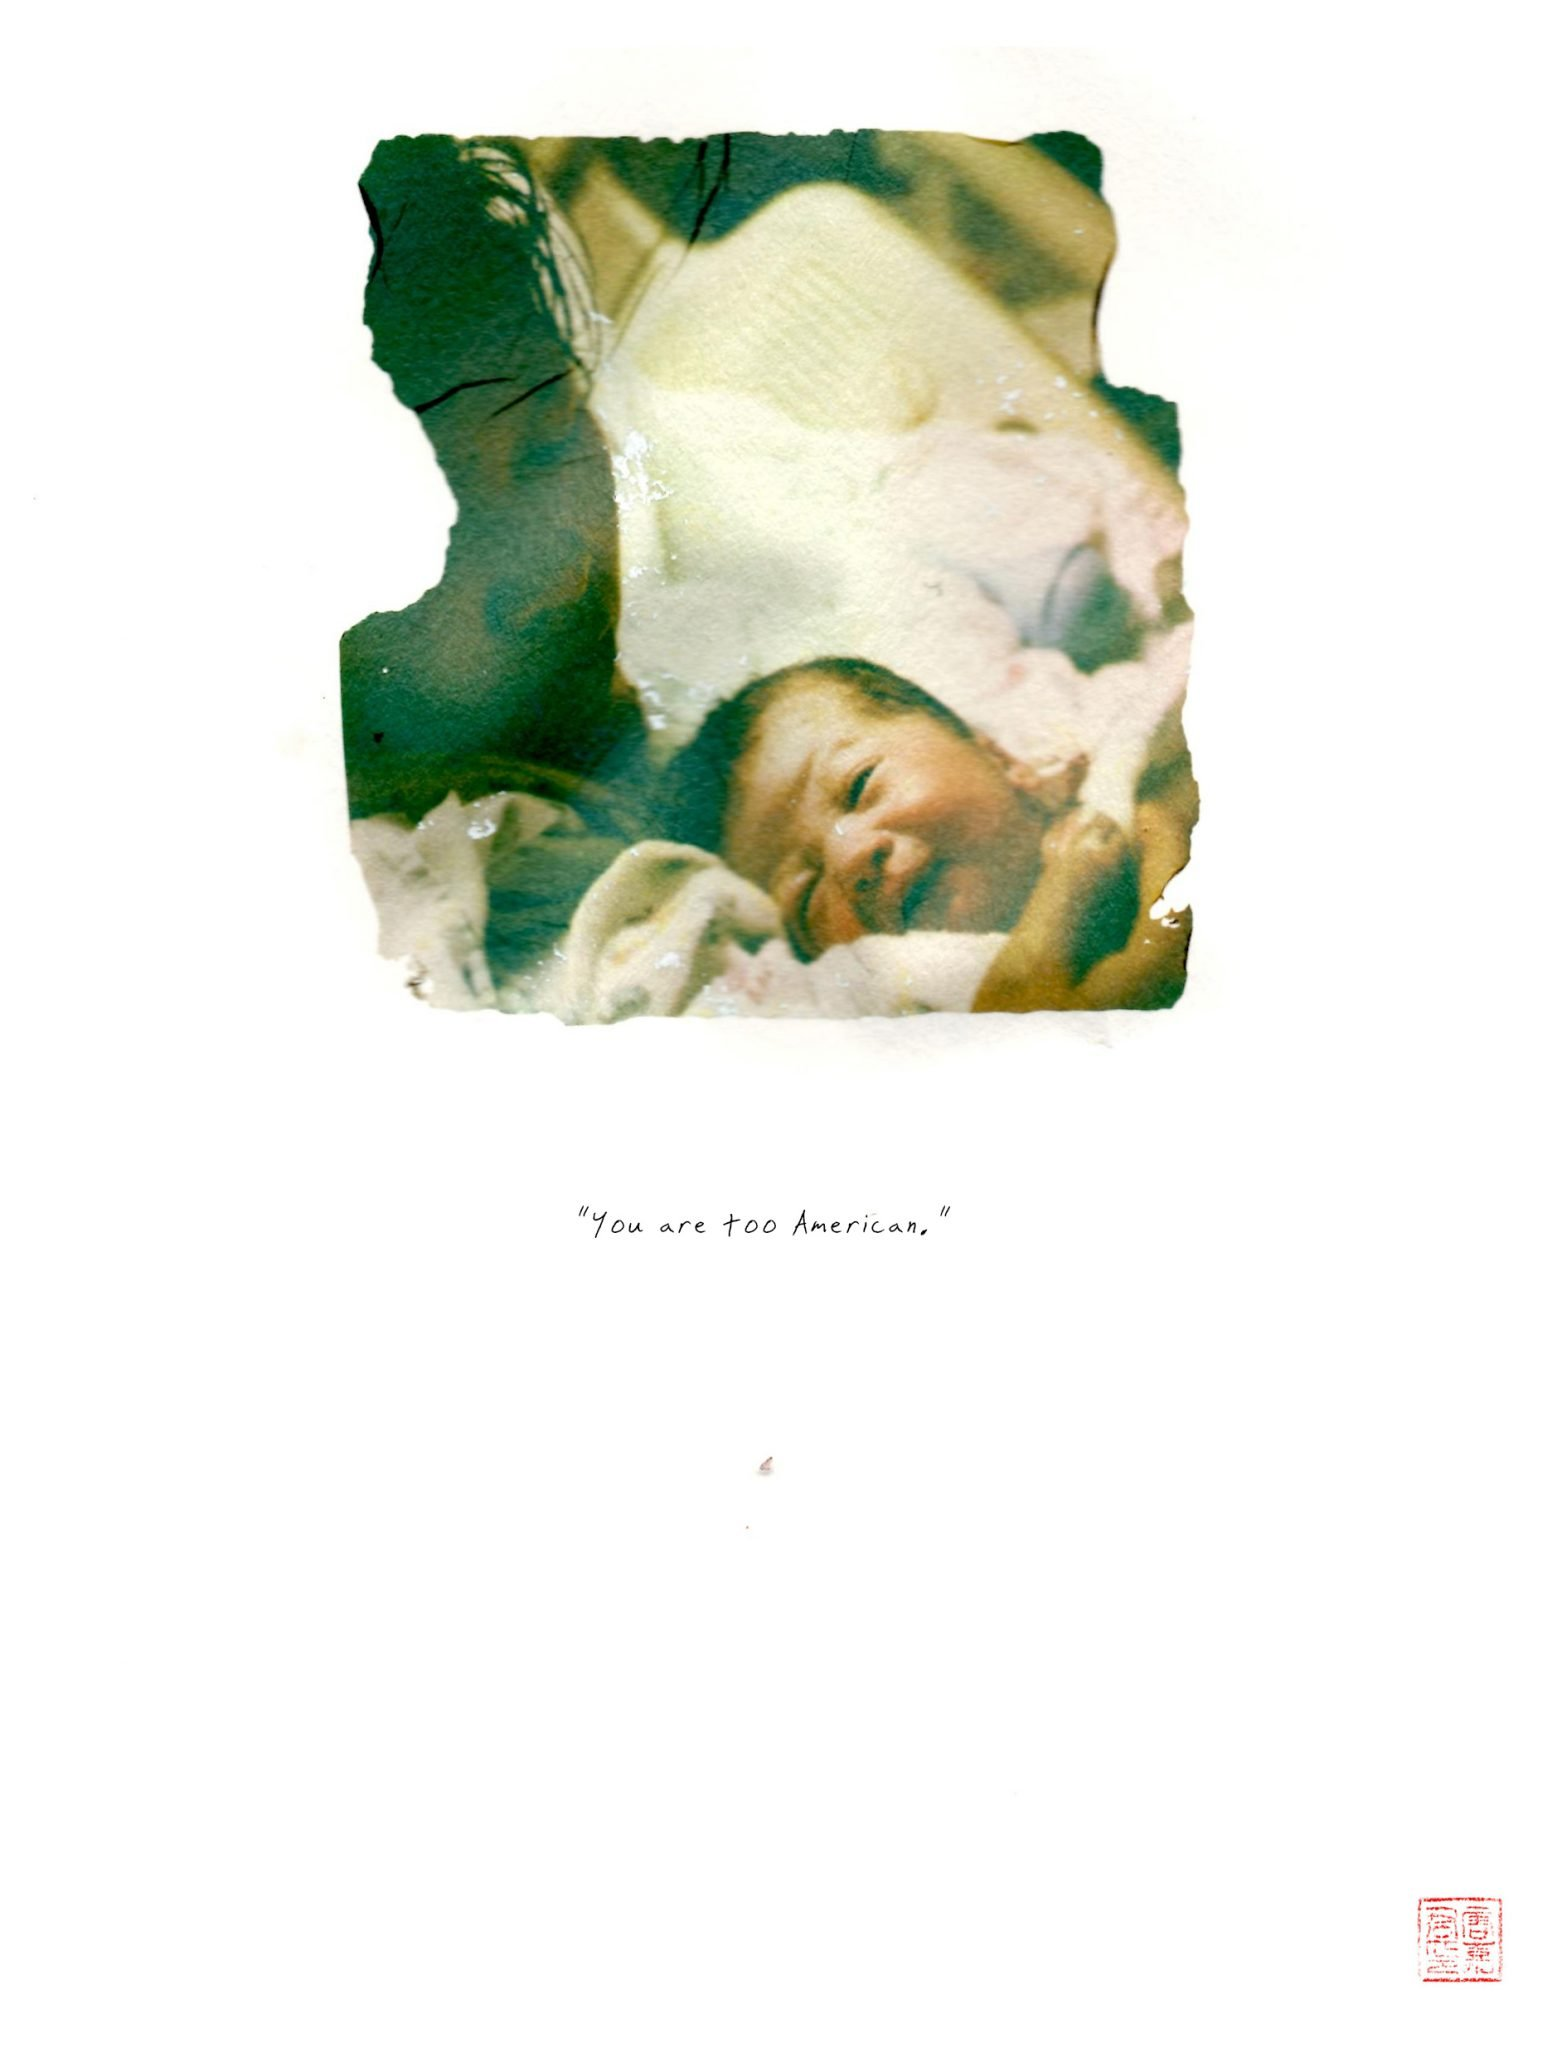 """polaroid emulsion of woman with newborn and words """"You are too American"""""""